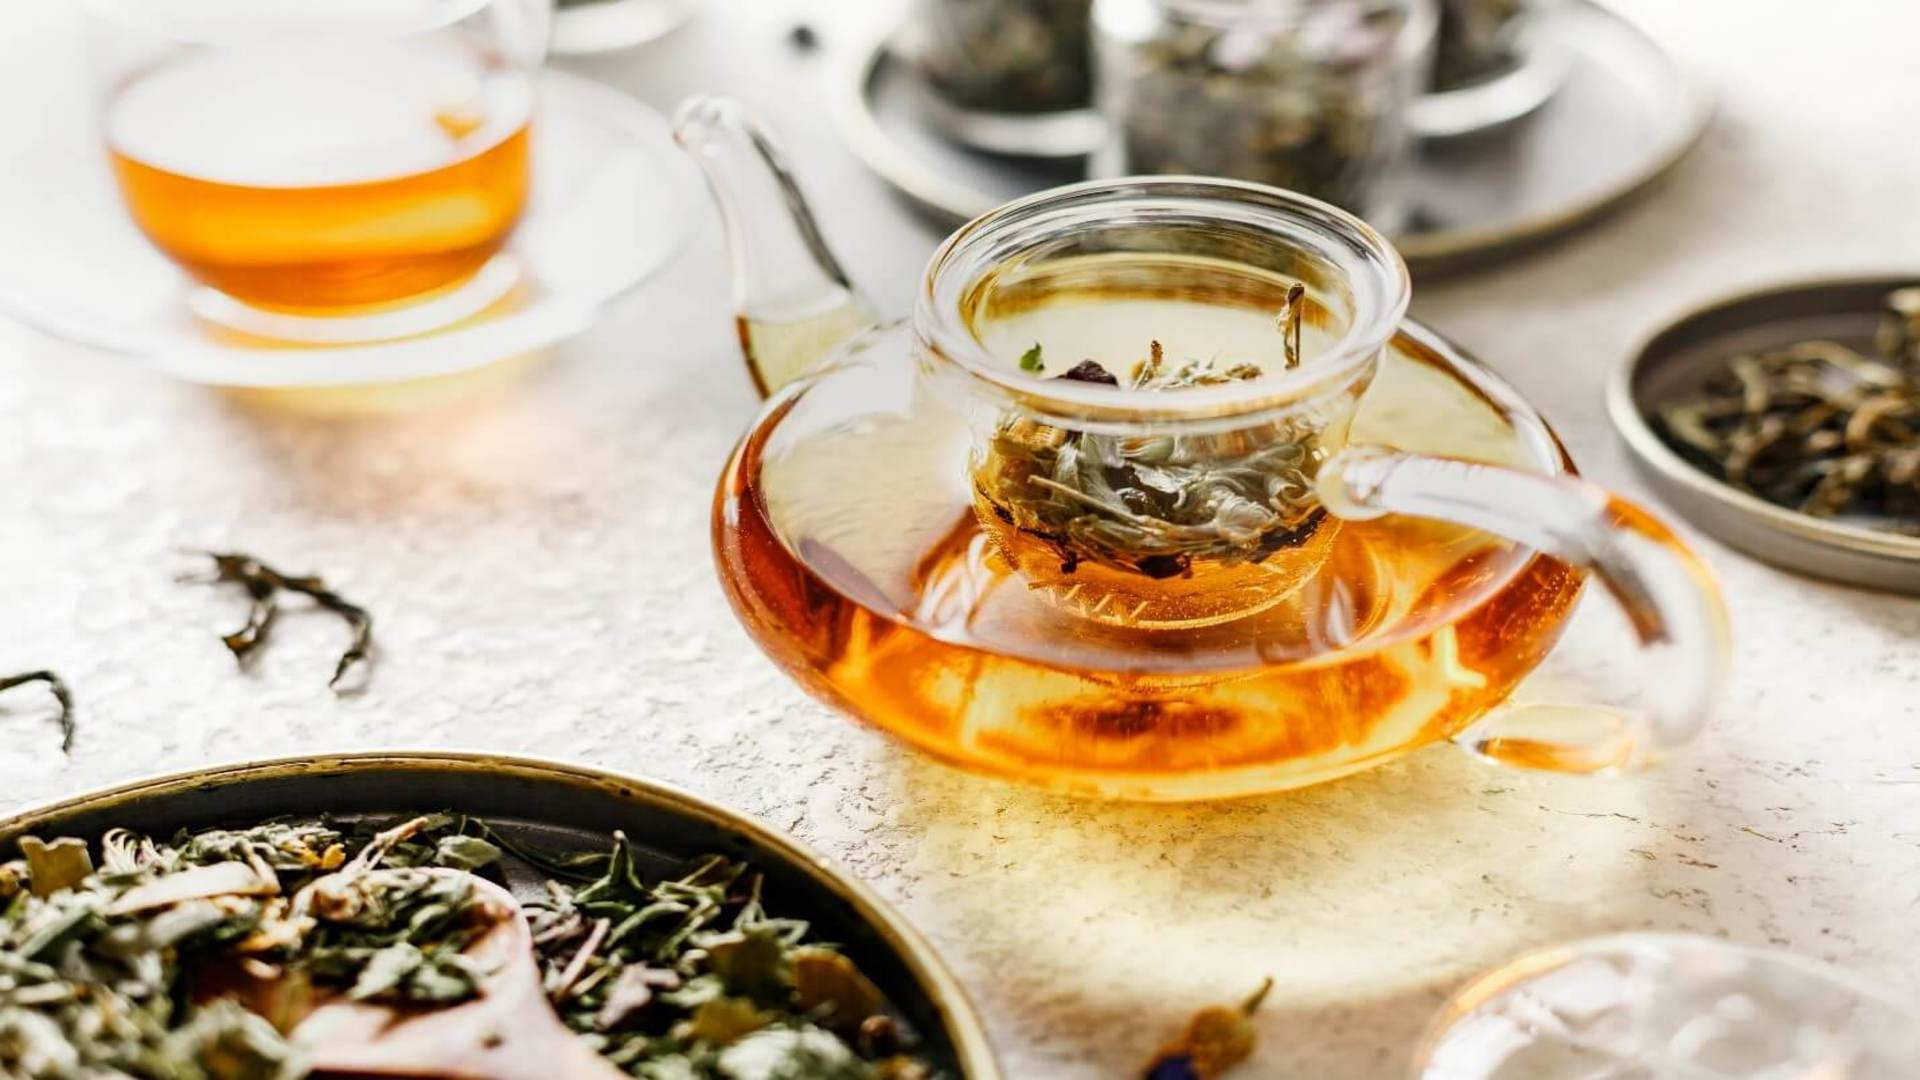 6 Benefits of Adding Loose Leaf Tea  To Your Daily Routine